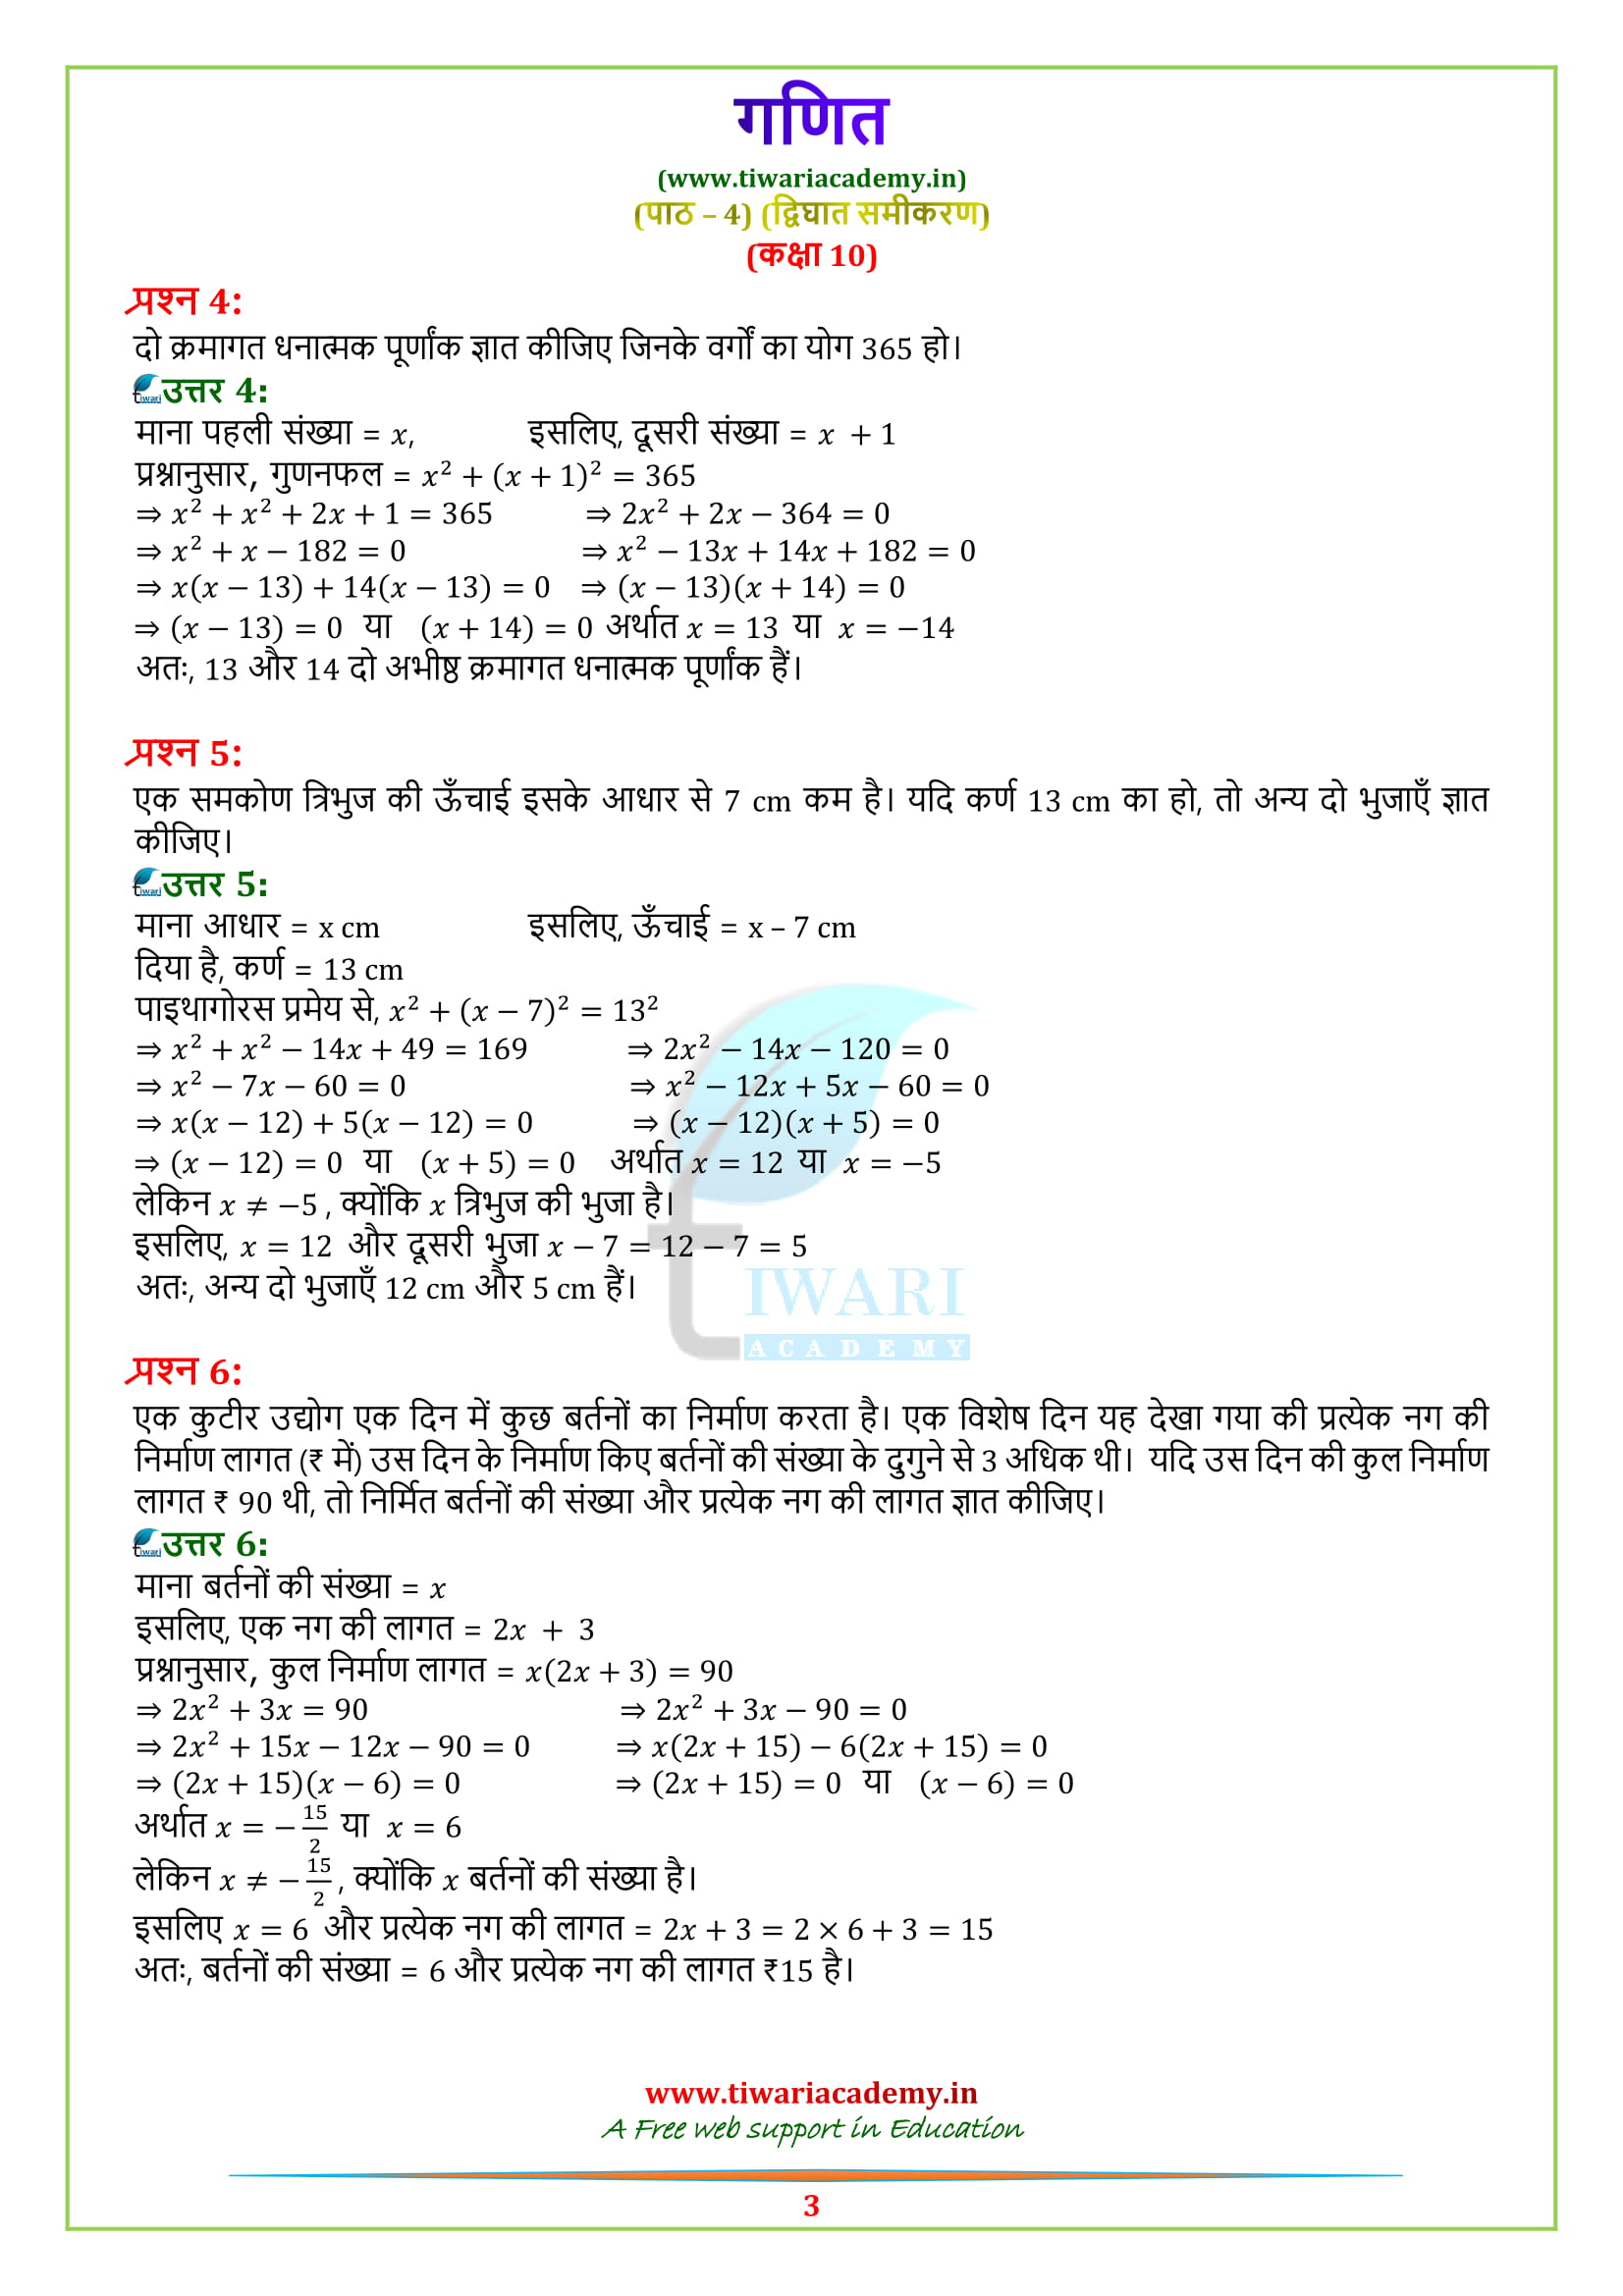 NCERT Sols for 10 maths ex. 4.2 in hindi question 1, 2, 3, 4, 5, 6